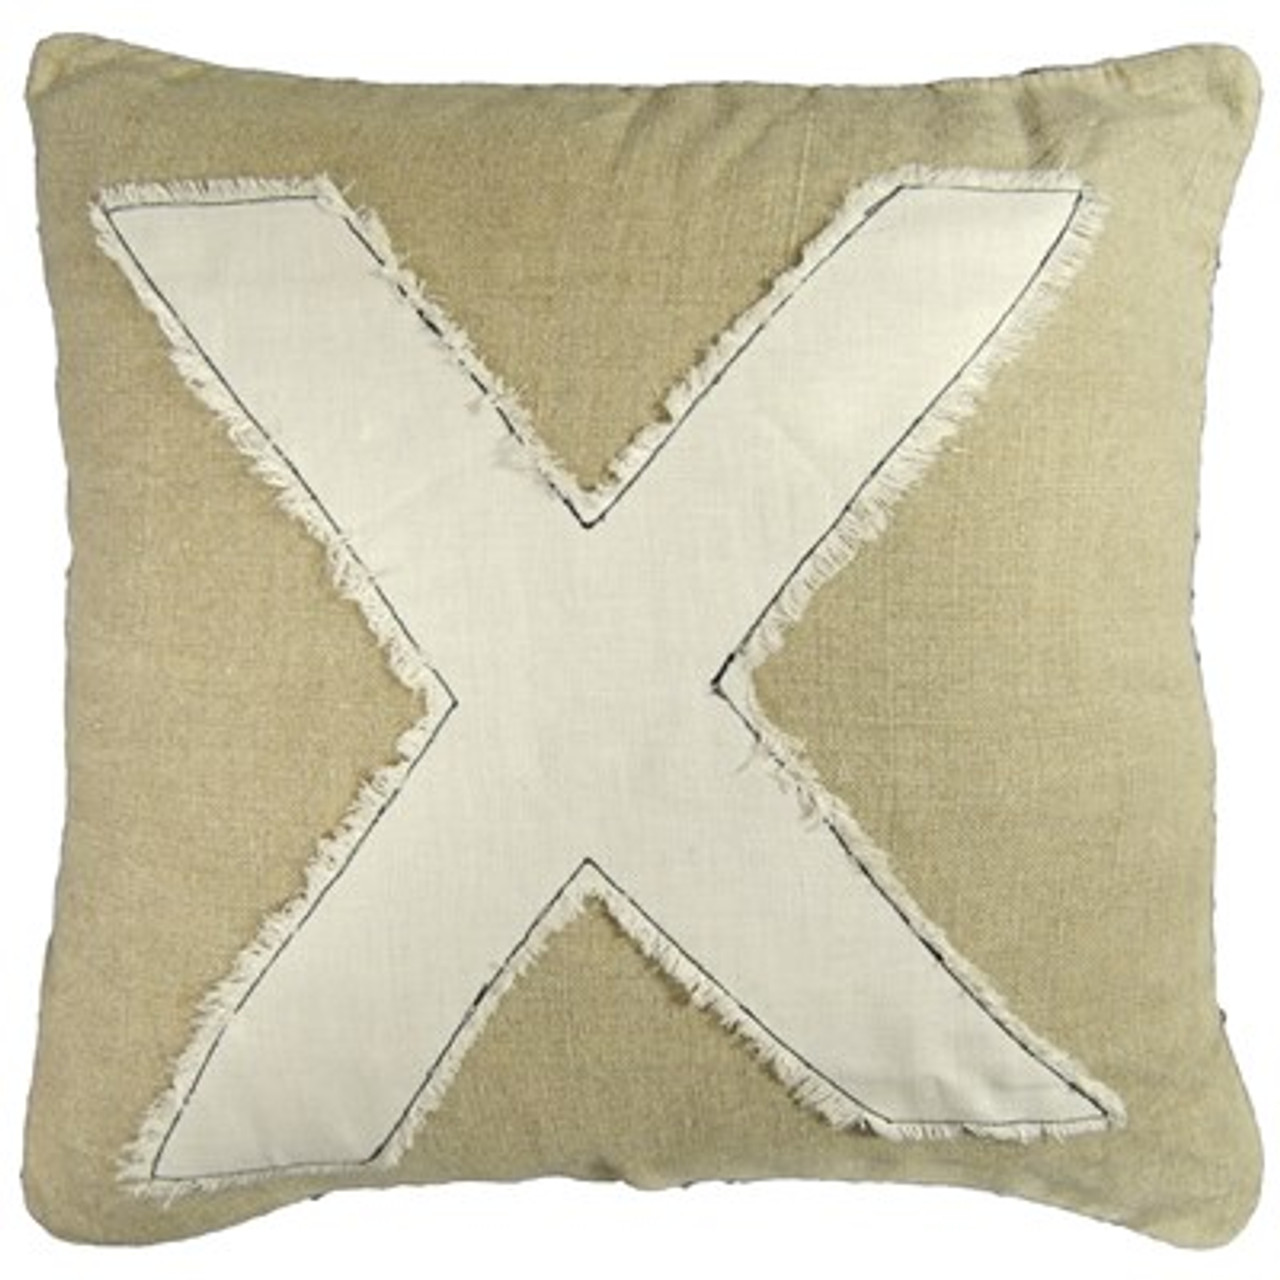 PILLOW COLLECTION - X